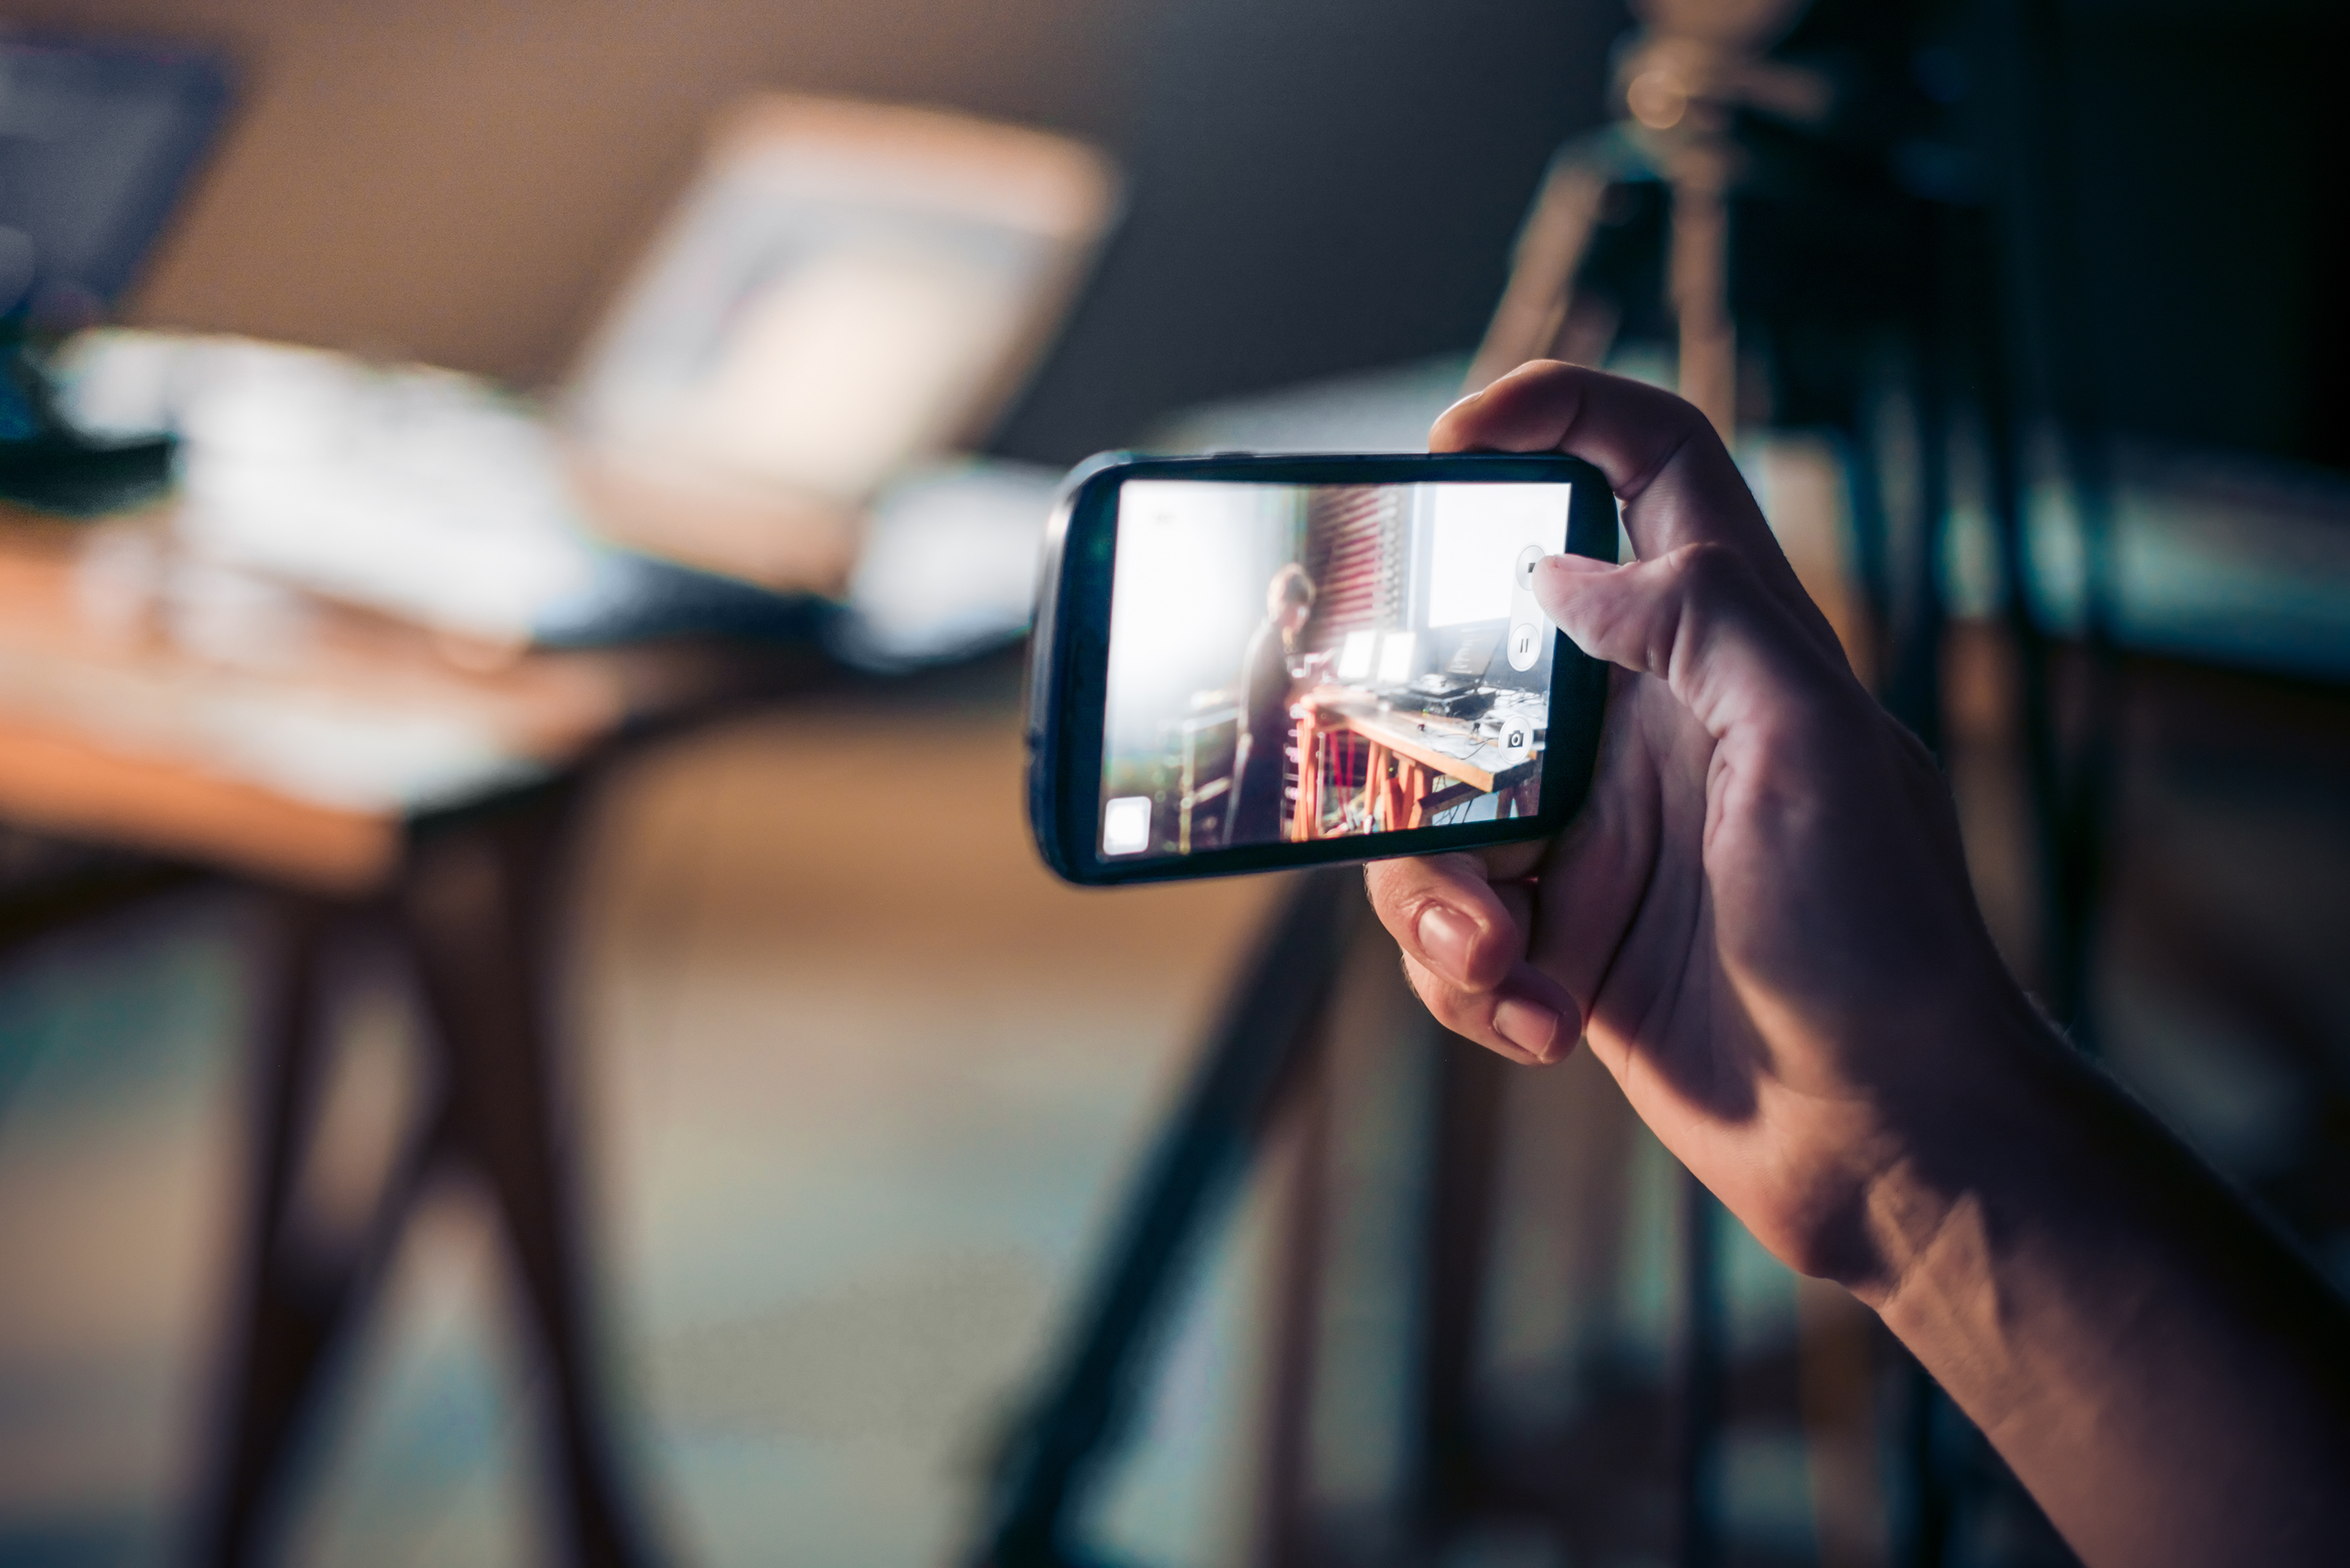 The next wave in storytelling is short-form video | VentureBeat